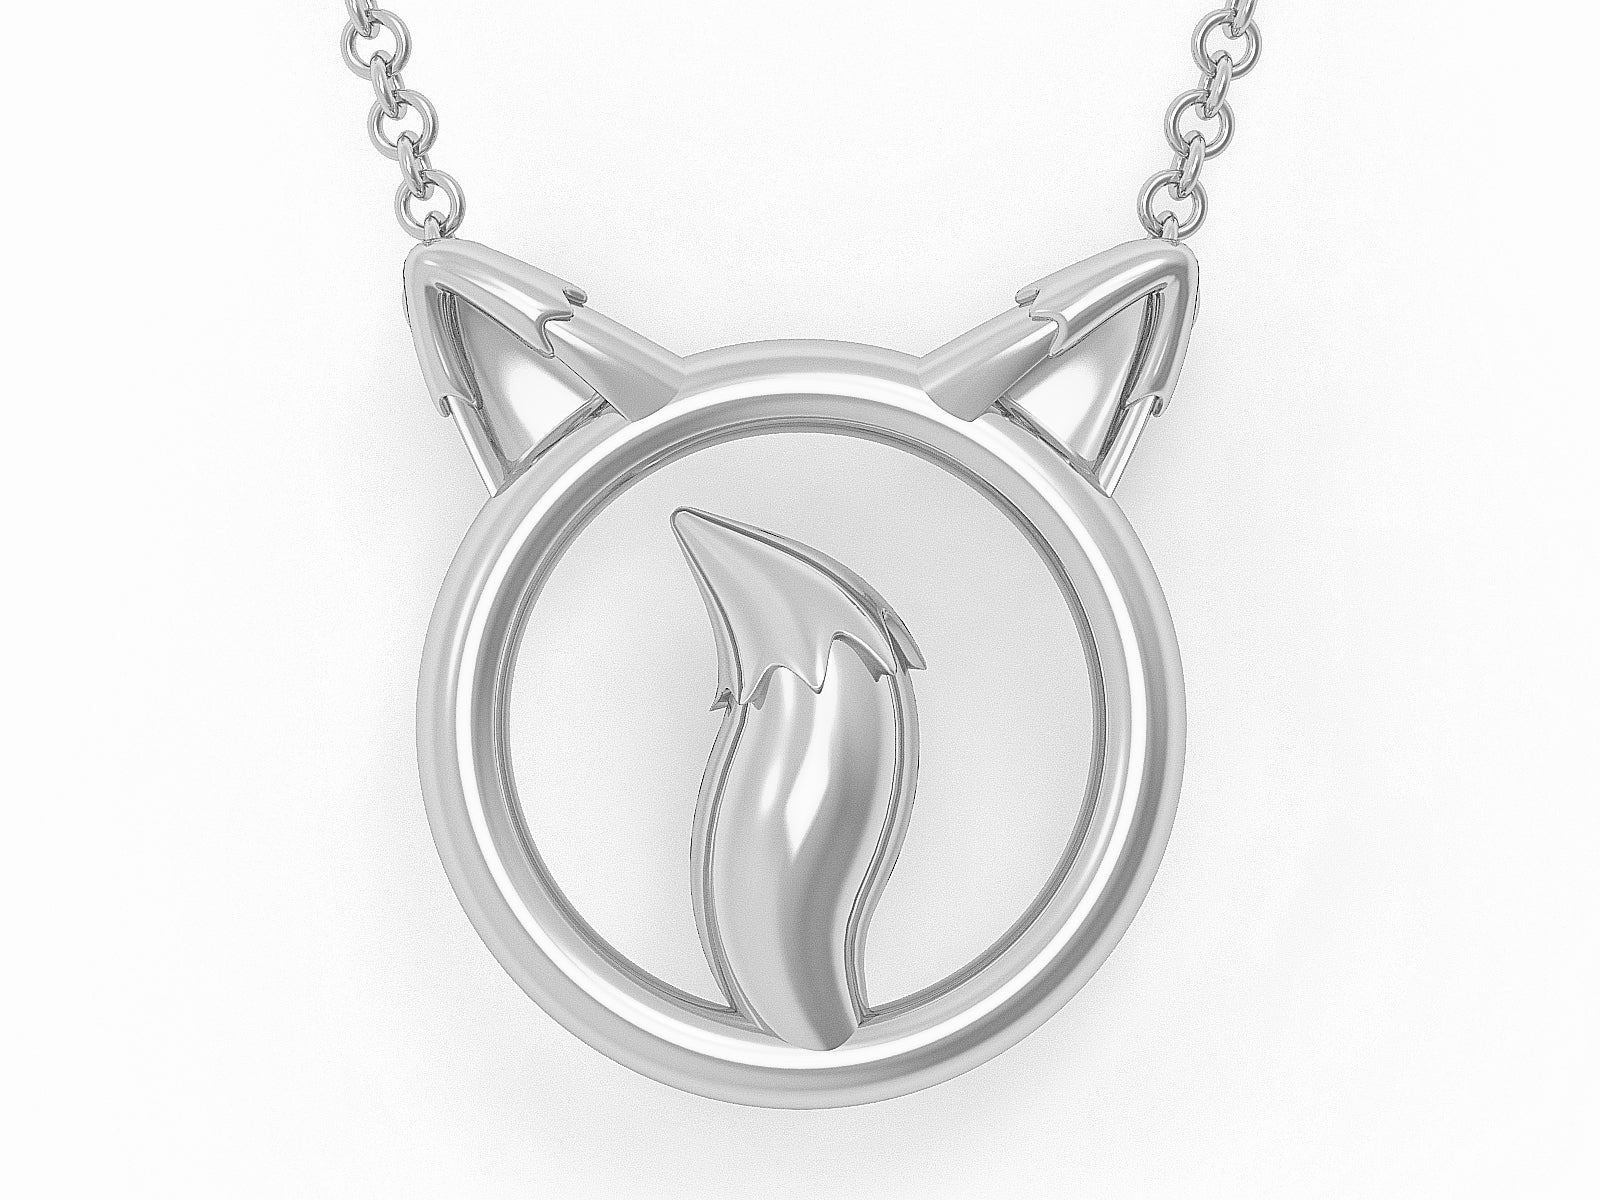 Solid 925 Sterling Silver Fox O Ring BDSM Day Collar